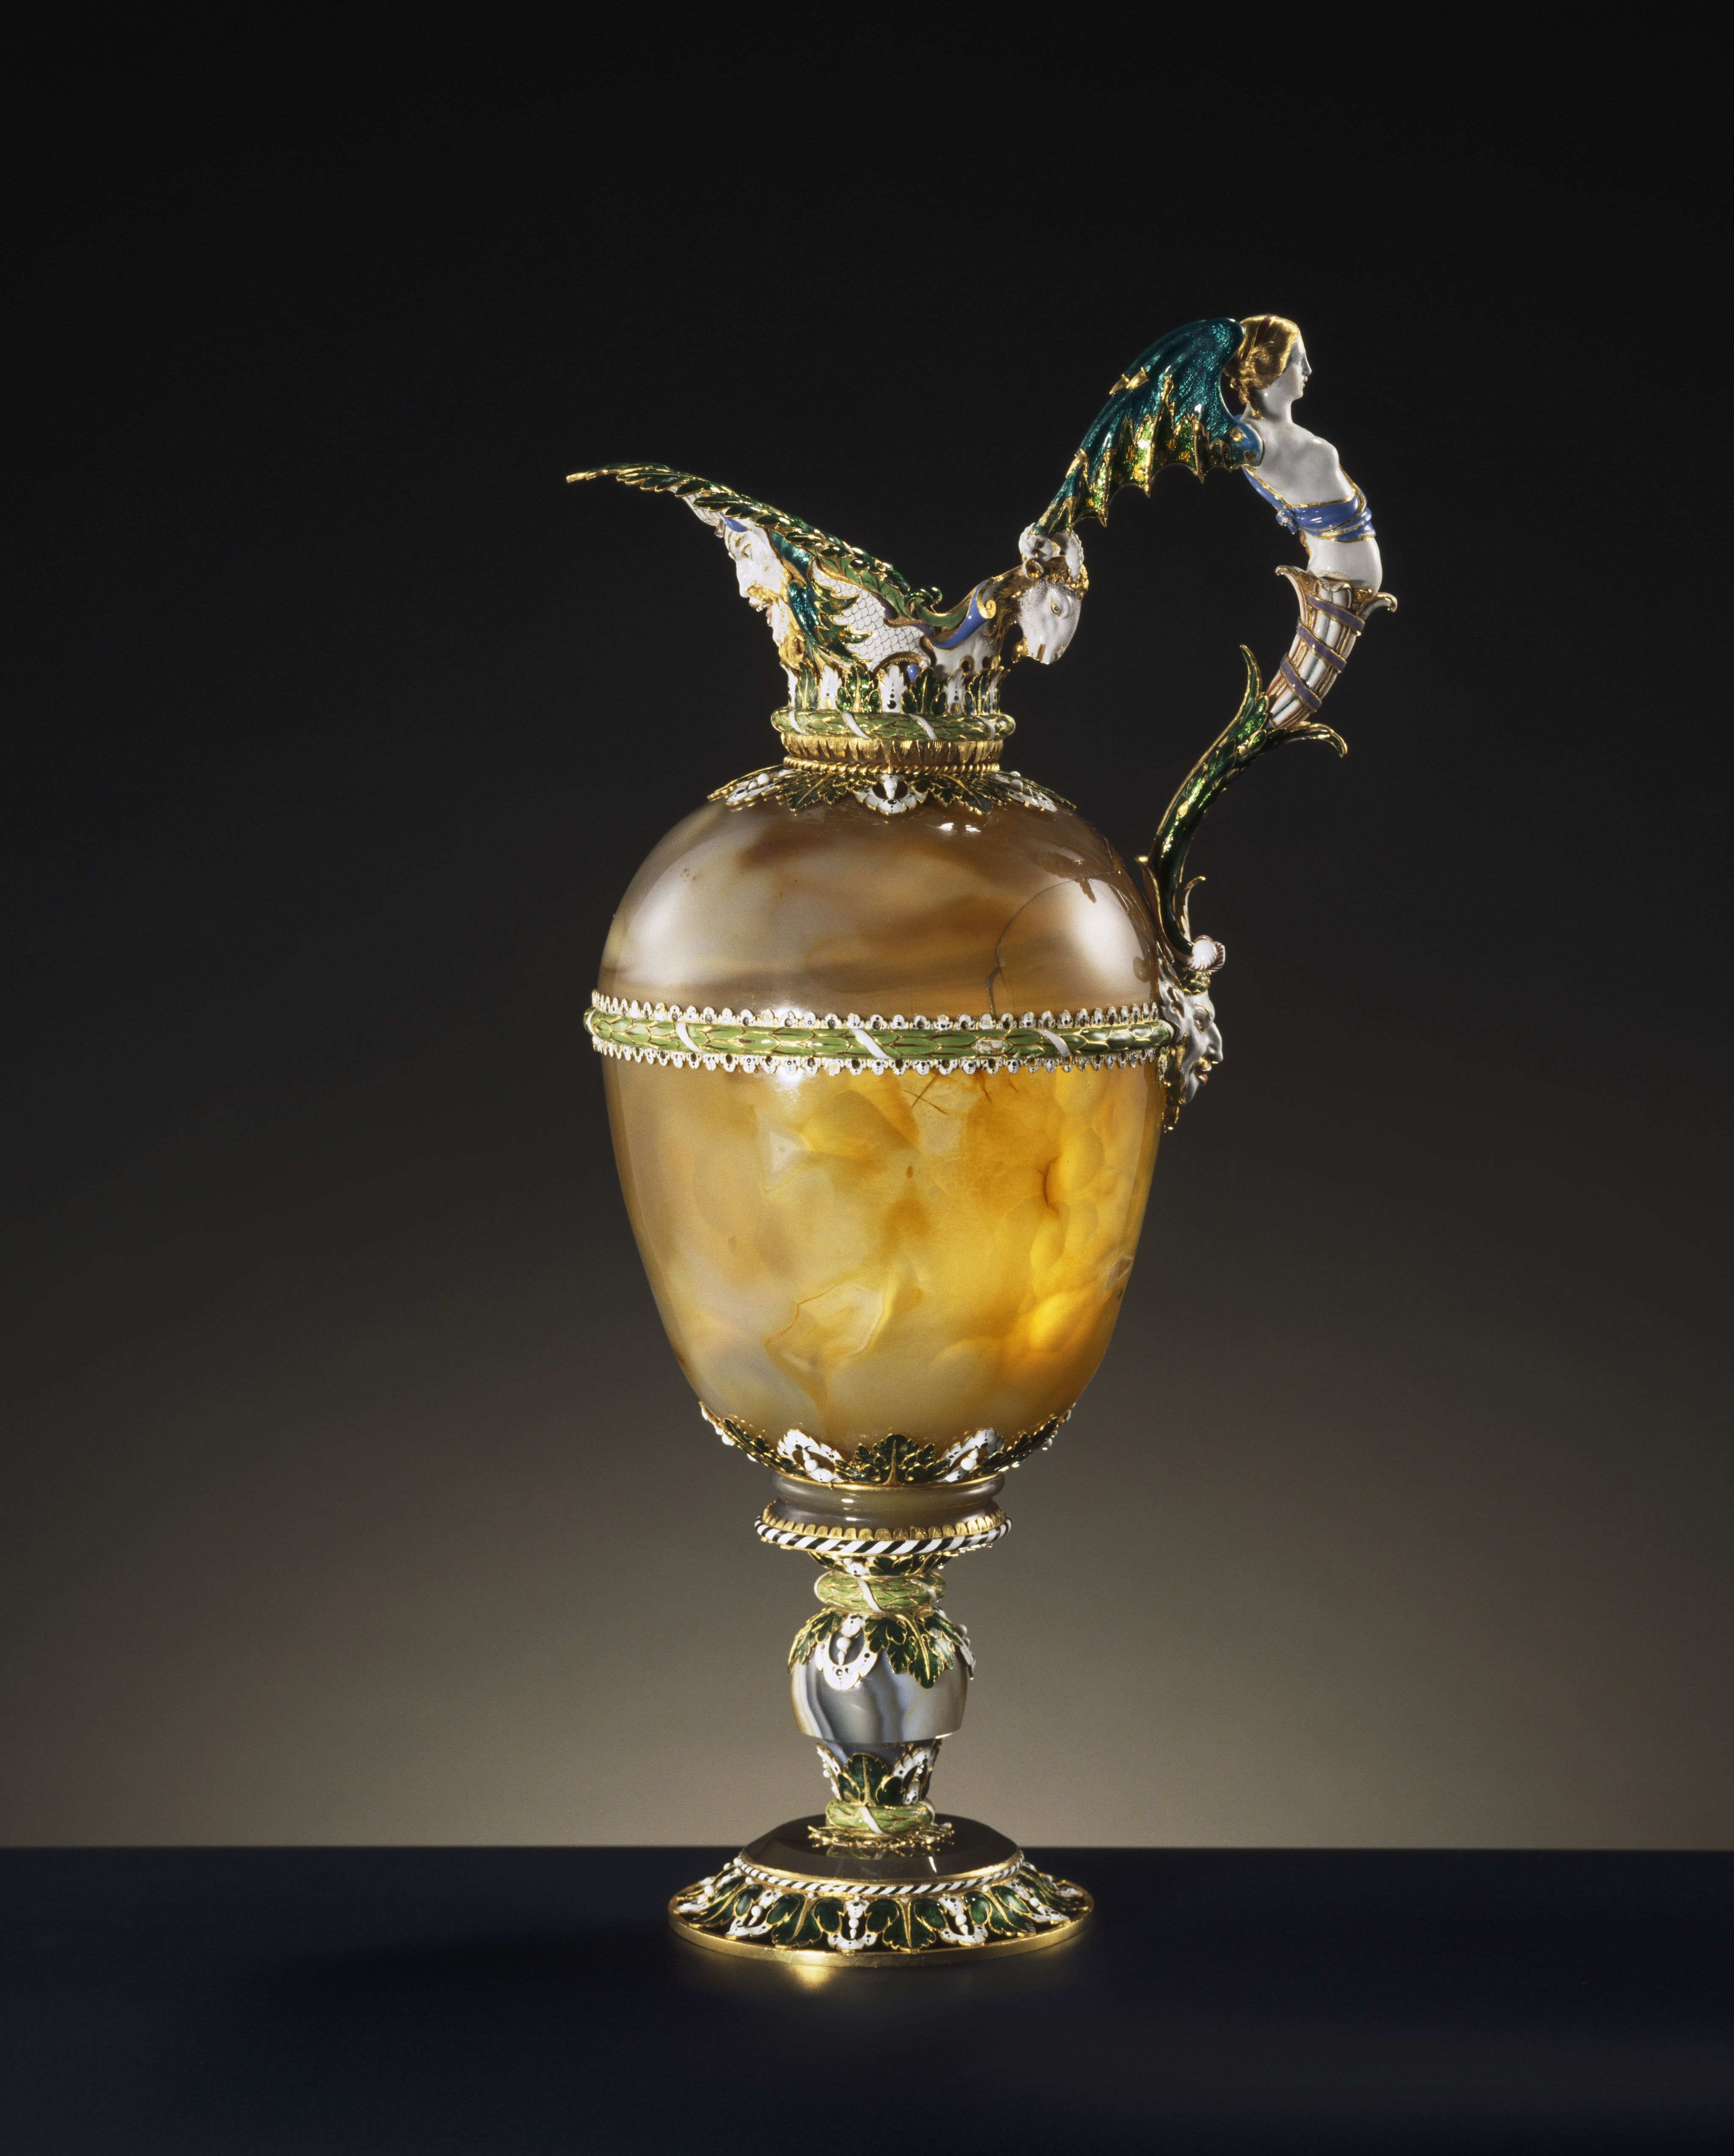 Mansilla Tunon Royal Collections Museum: Royal Treasures From The Louvre: Louis XIV To Marie